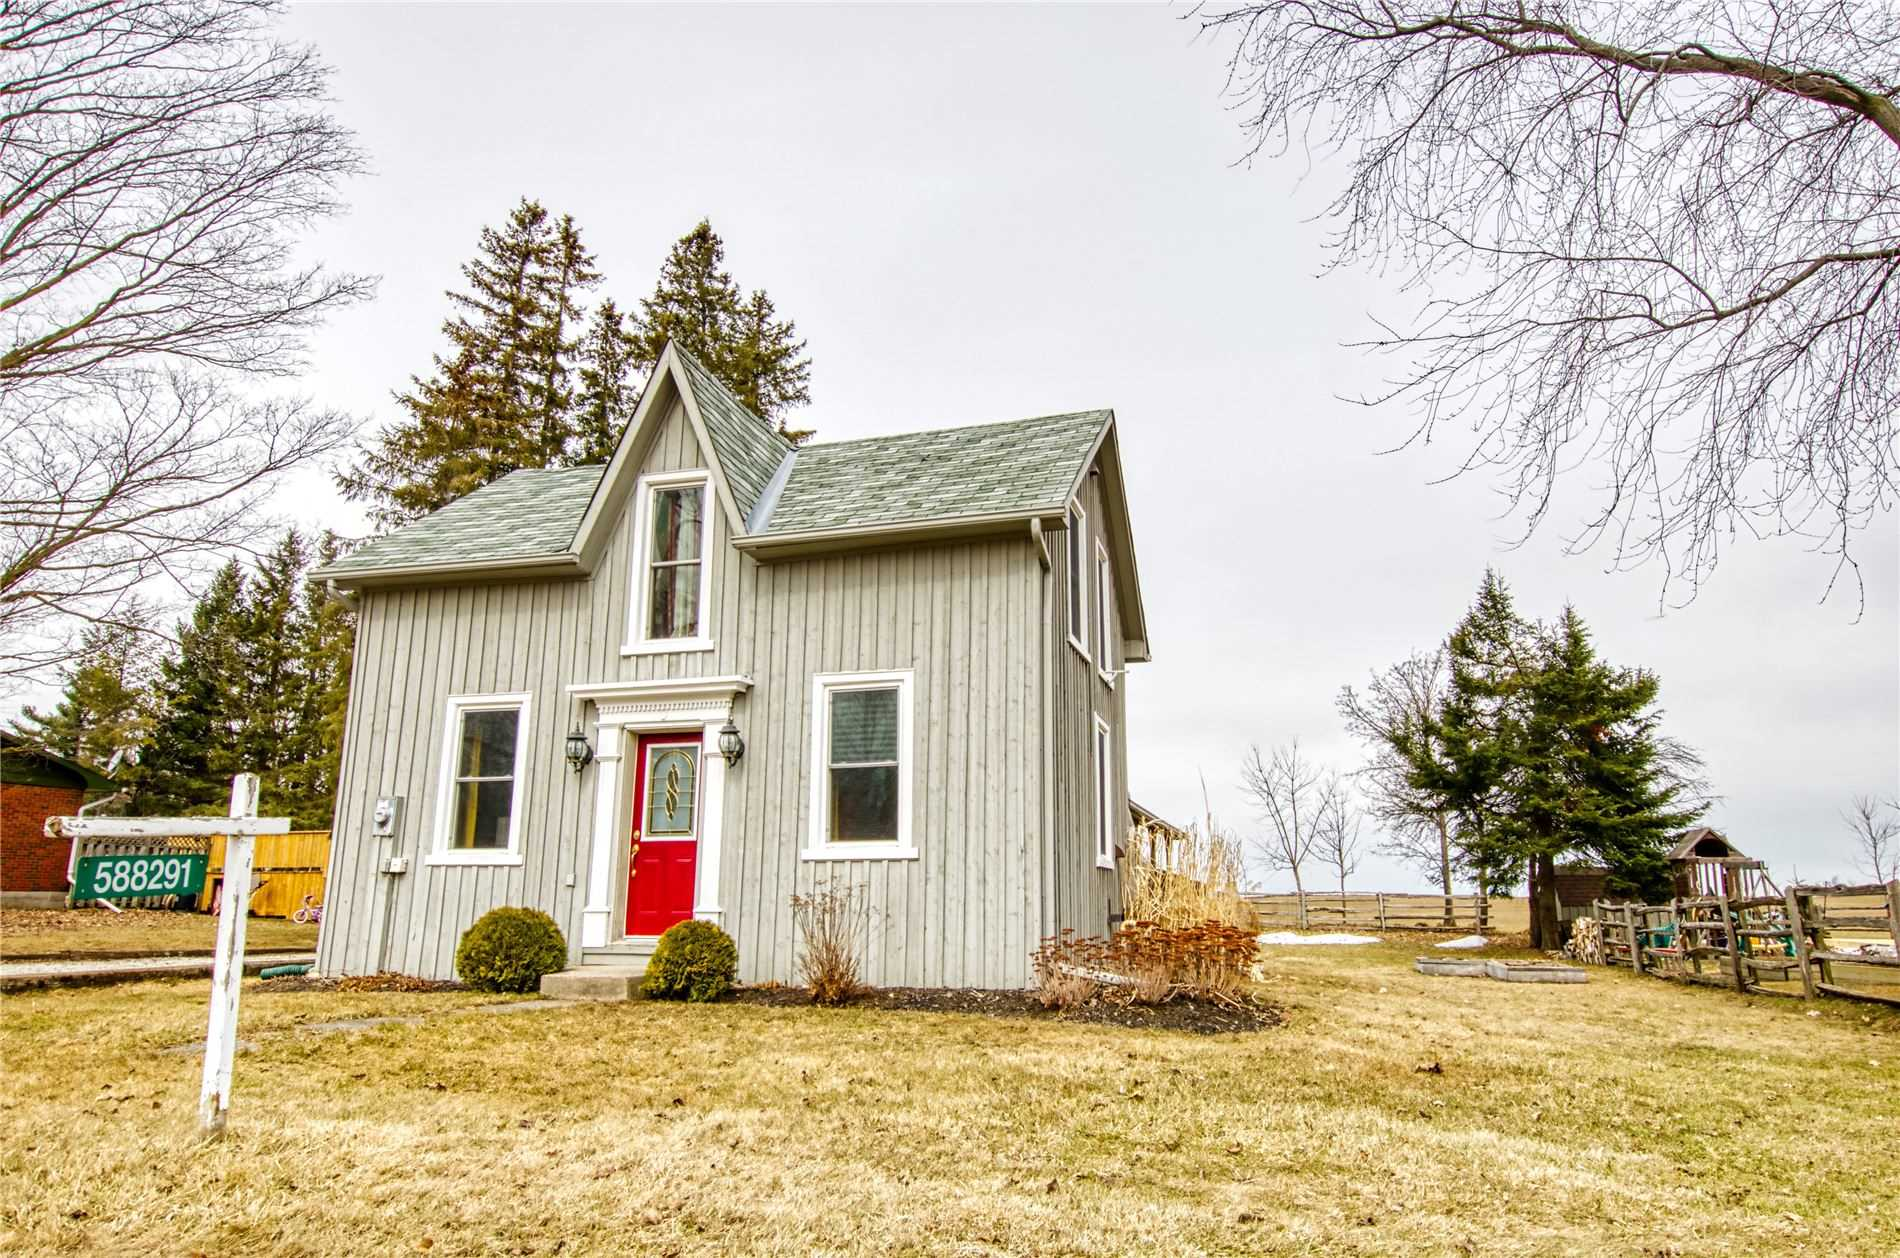 pictures of house for sale MLS: X4727733 located at 588291 County Road 17 Rd, Mulmur L9V0S7